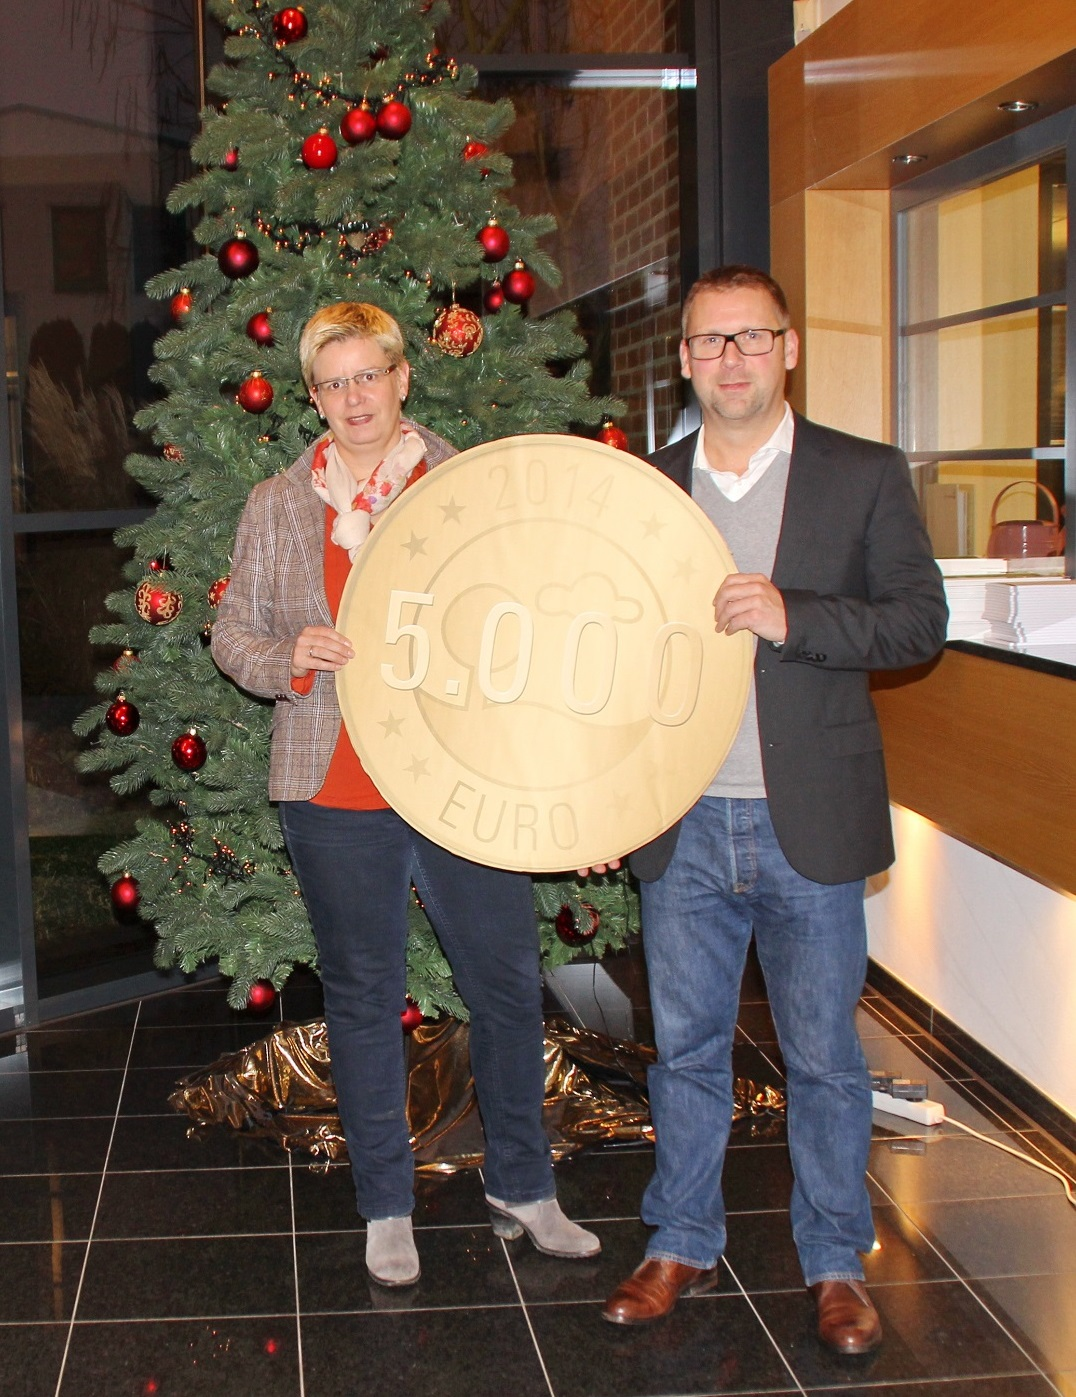 EnviTec Biogas donates a total of 10,000 euros for Christmas